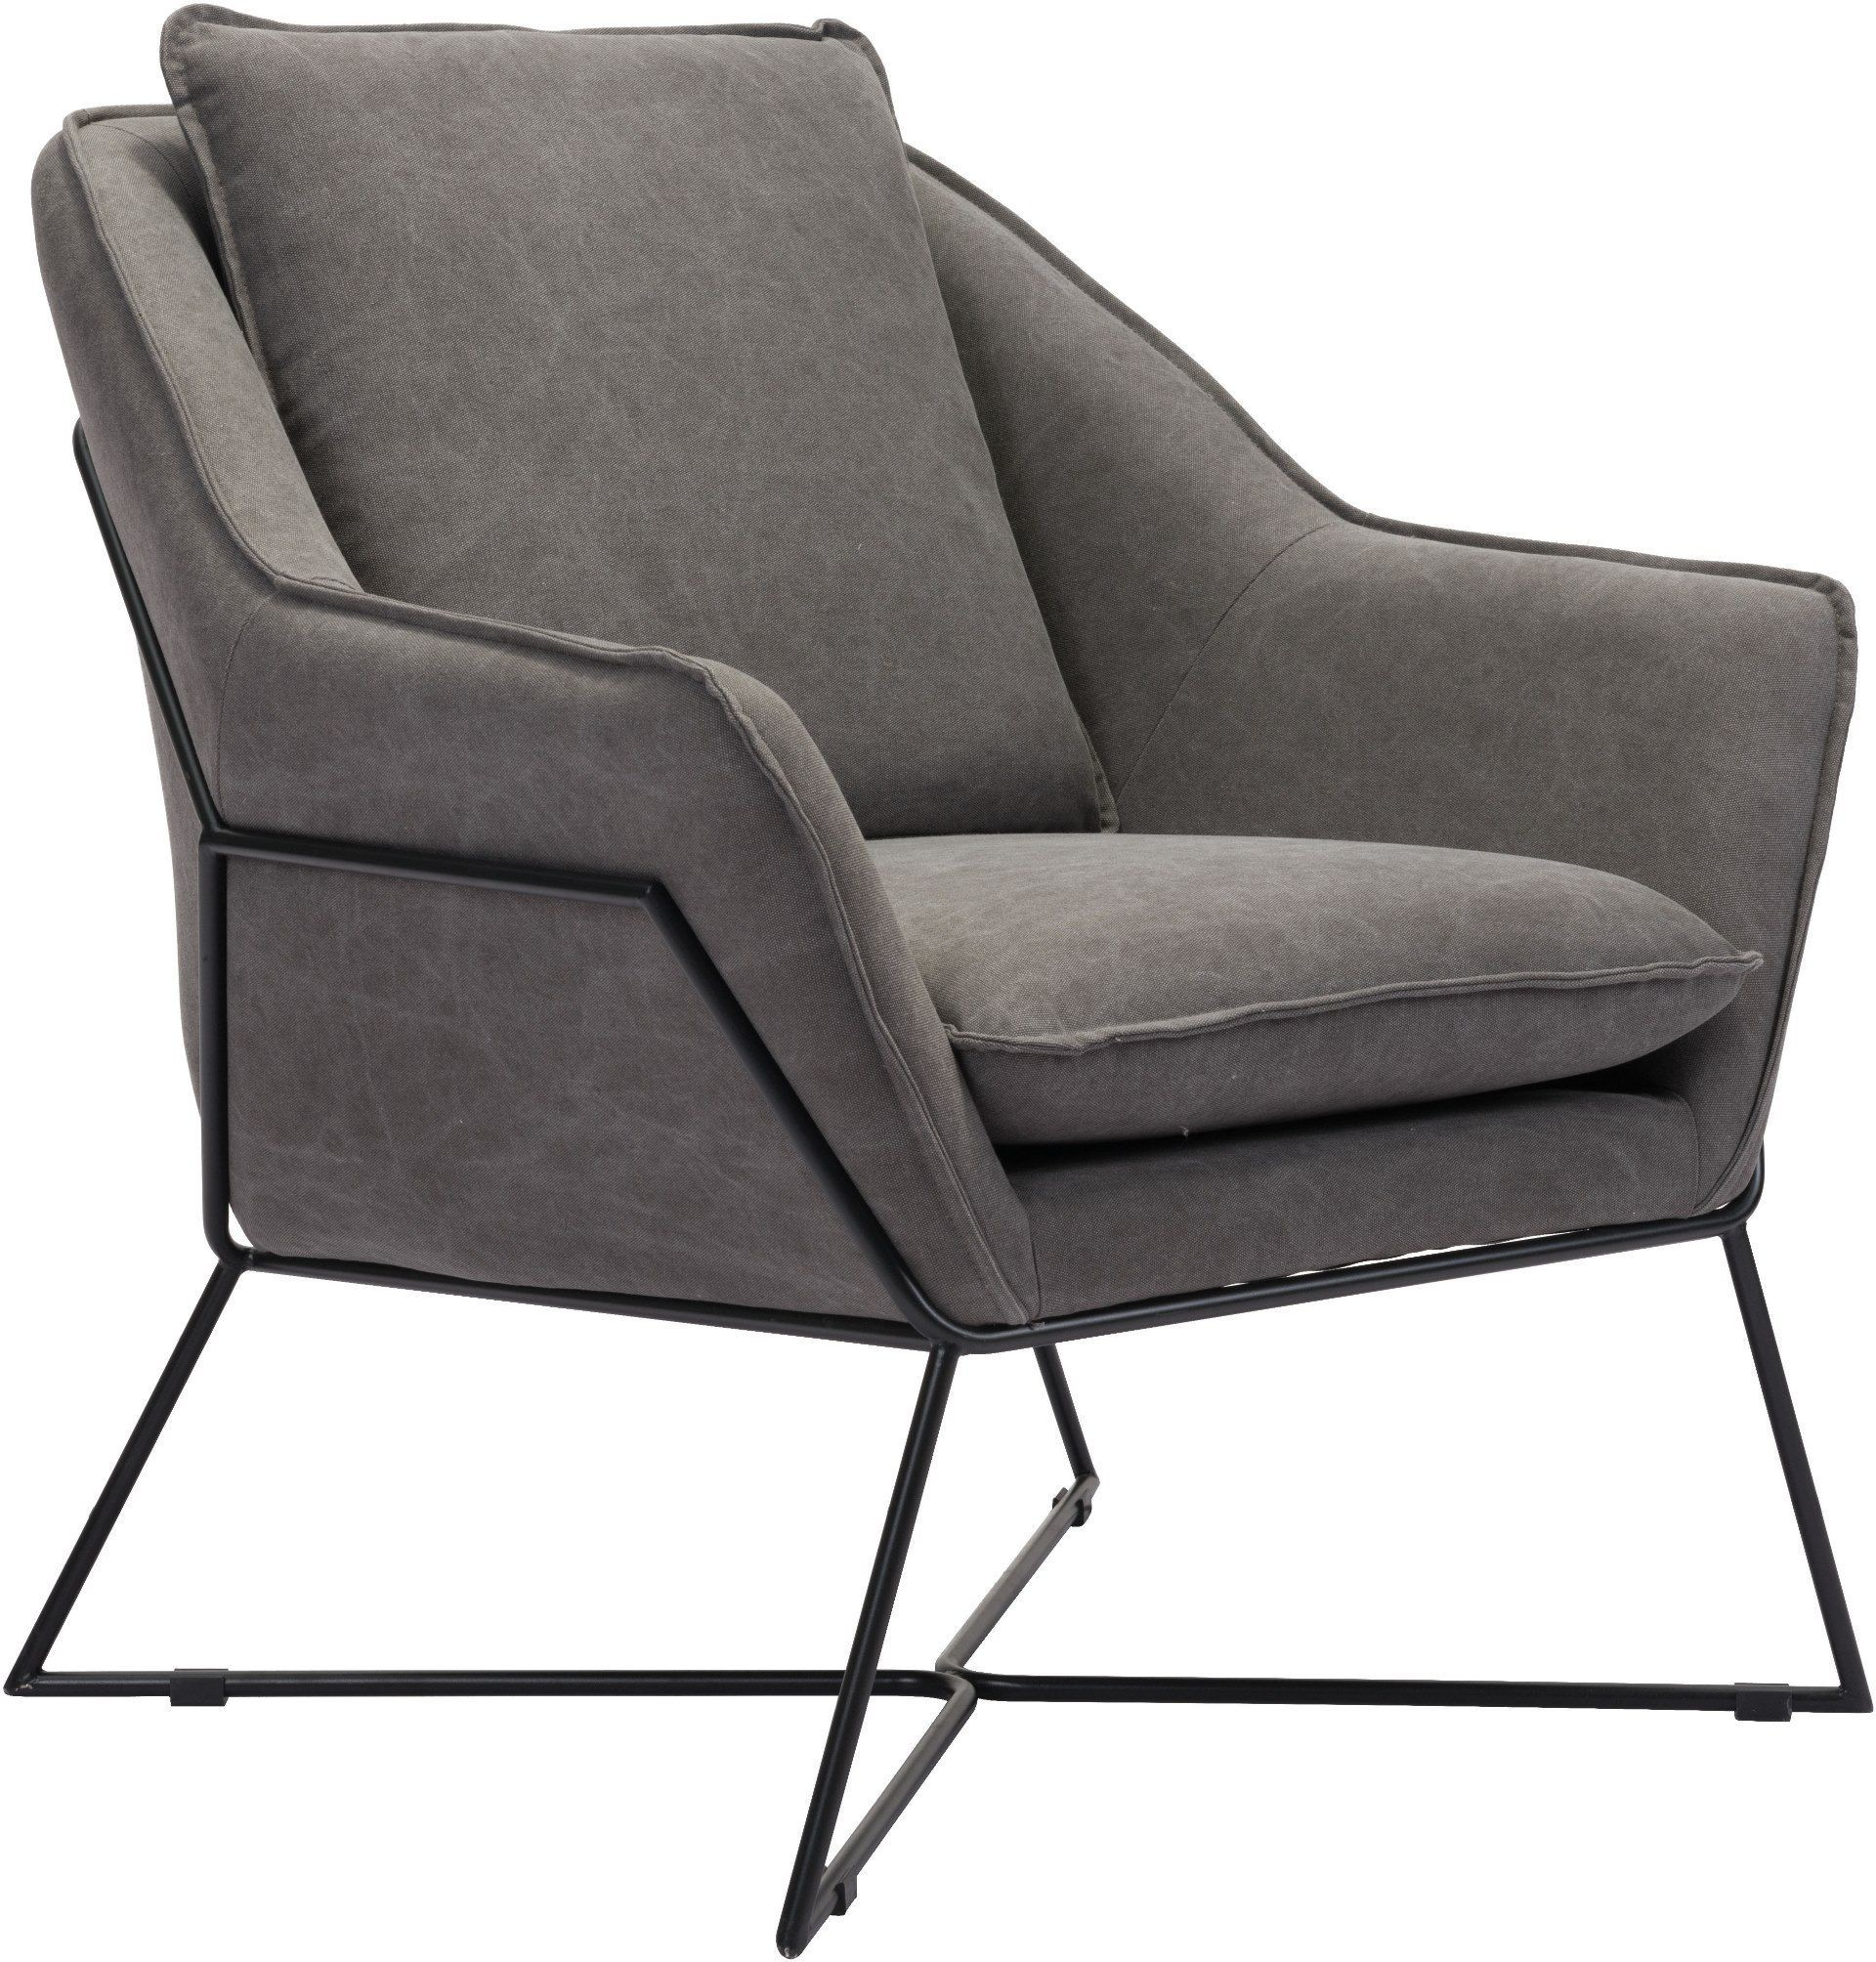 Lincoln Gray Lounge Chair from Zuo  Coleman Furniture